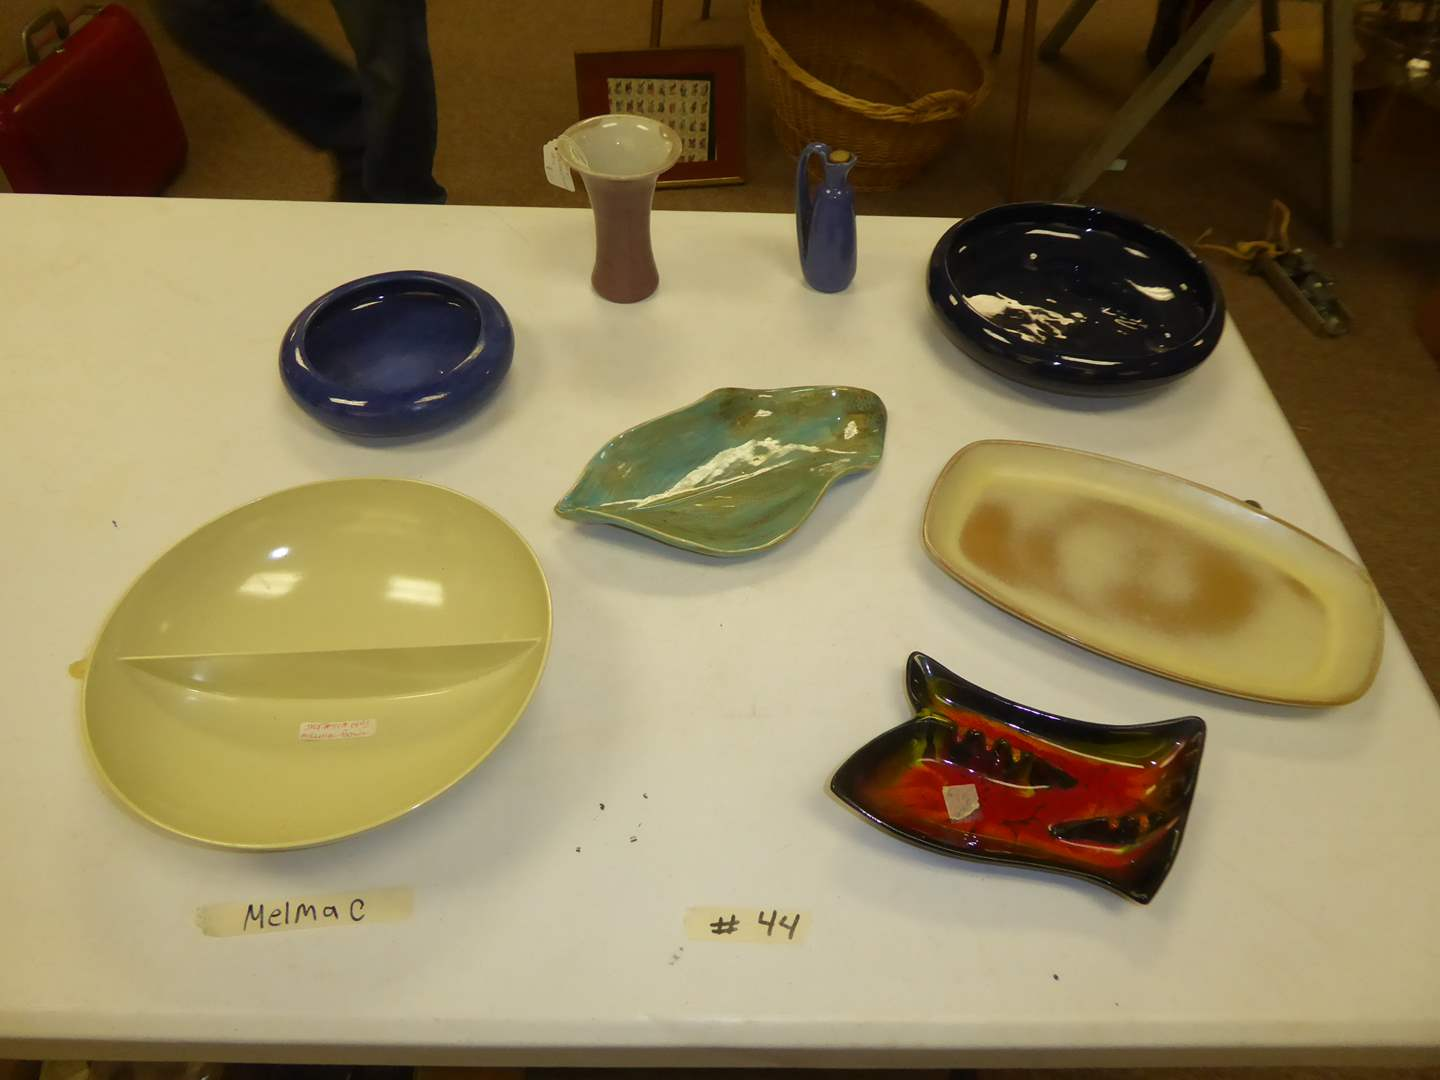 Lot # 44 - Melmac Bowl, Peters & Reed Pottery Vase & Other Pottery  (main image)